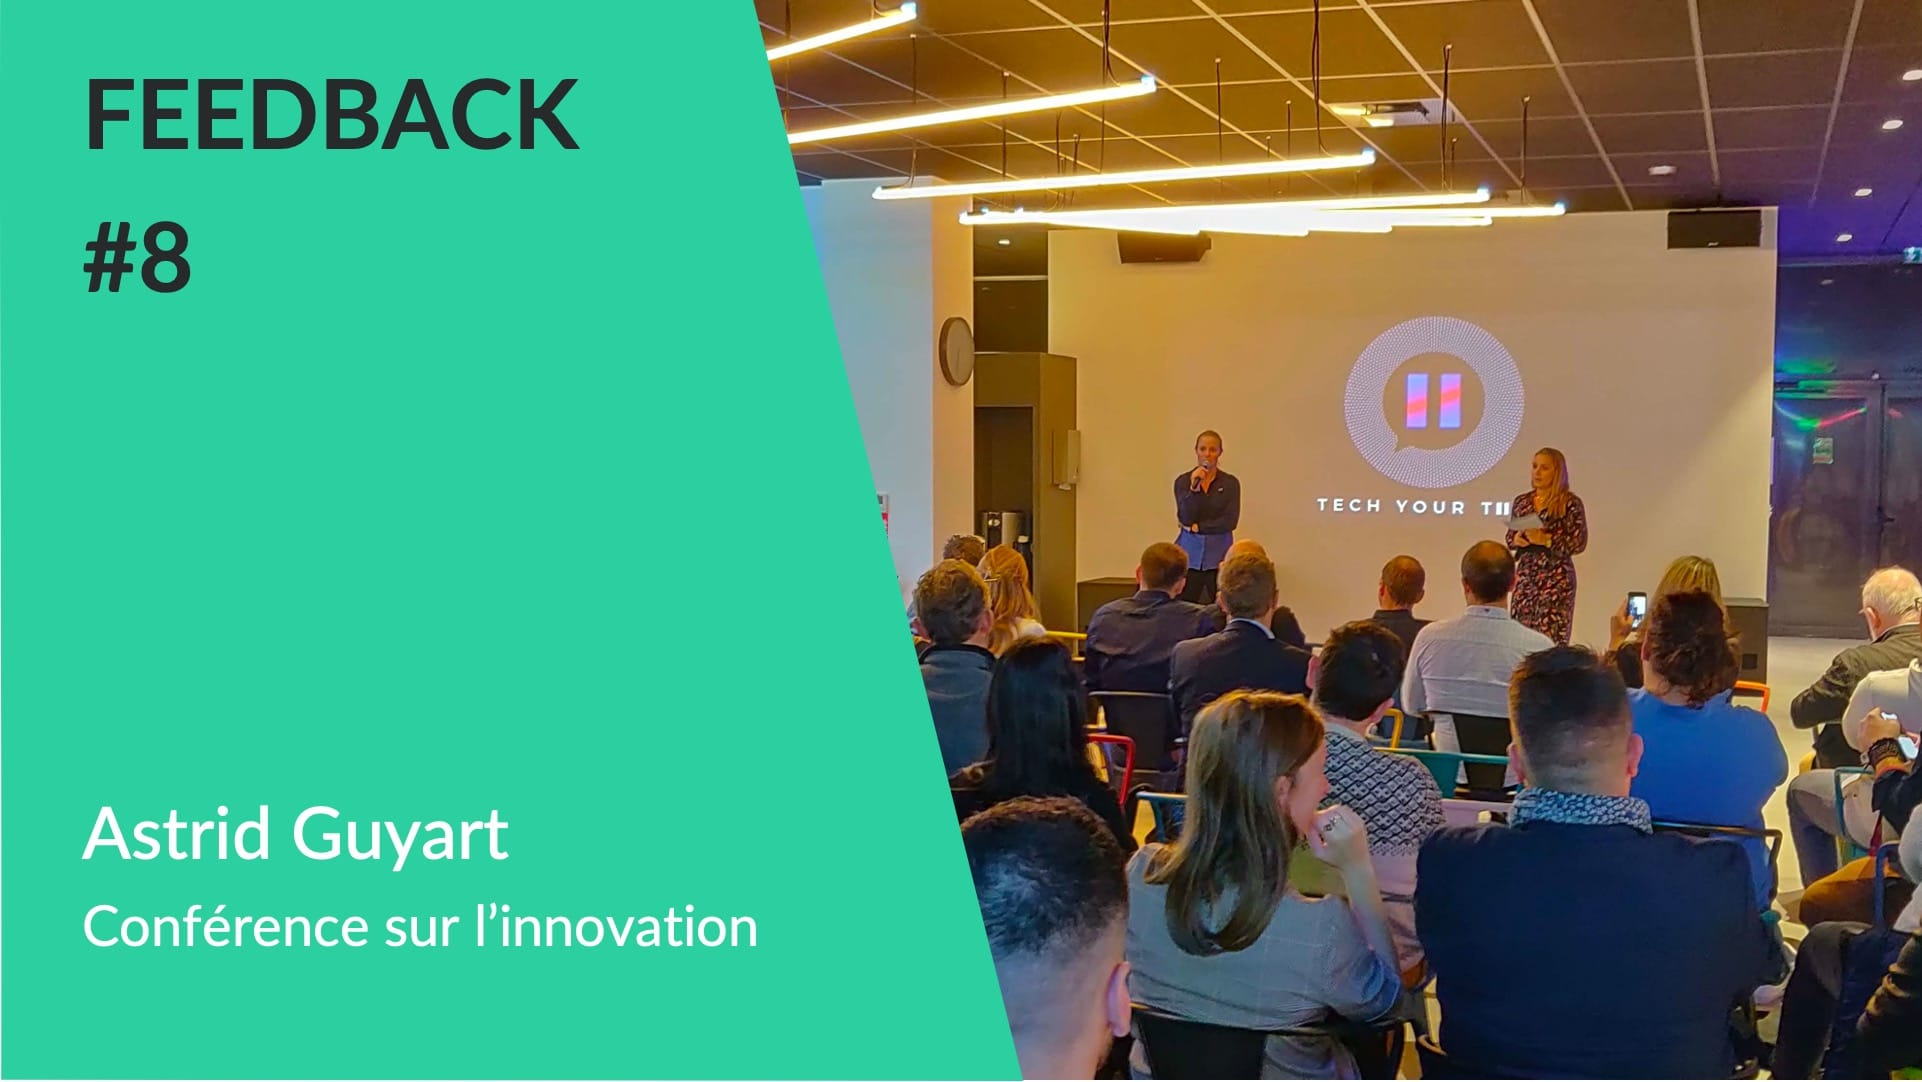 Feedback - Conference innovation manageriale avec Astrid Guyart